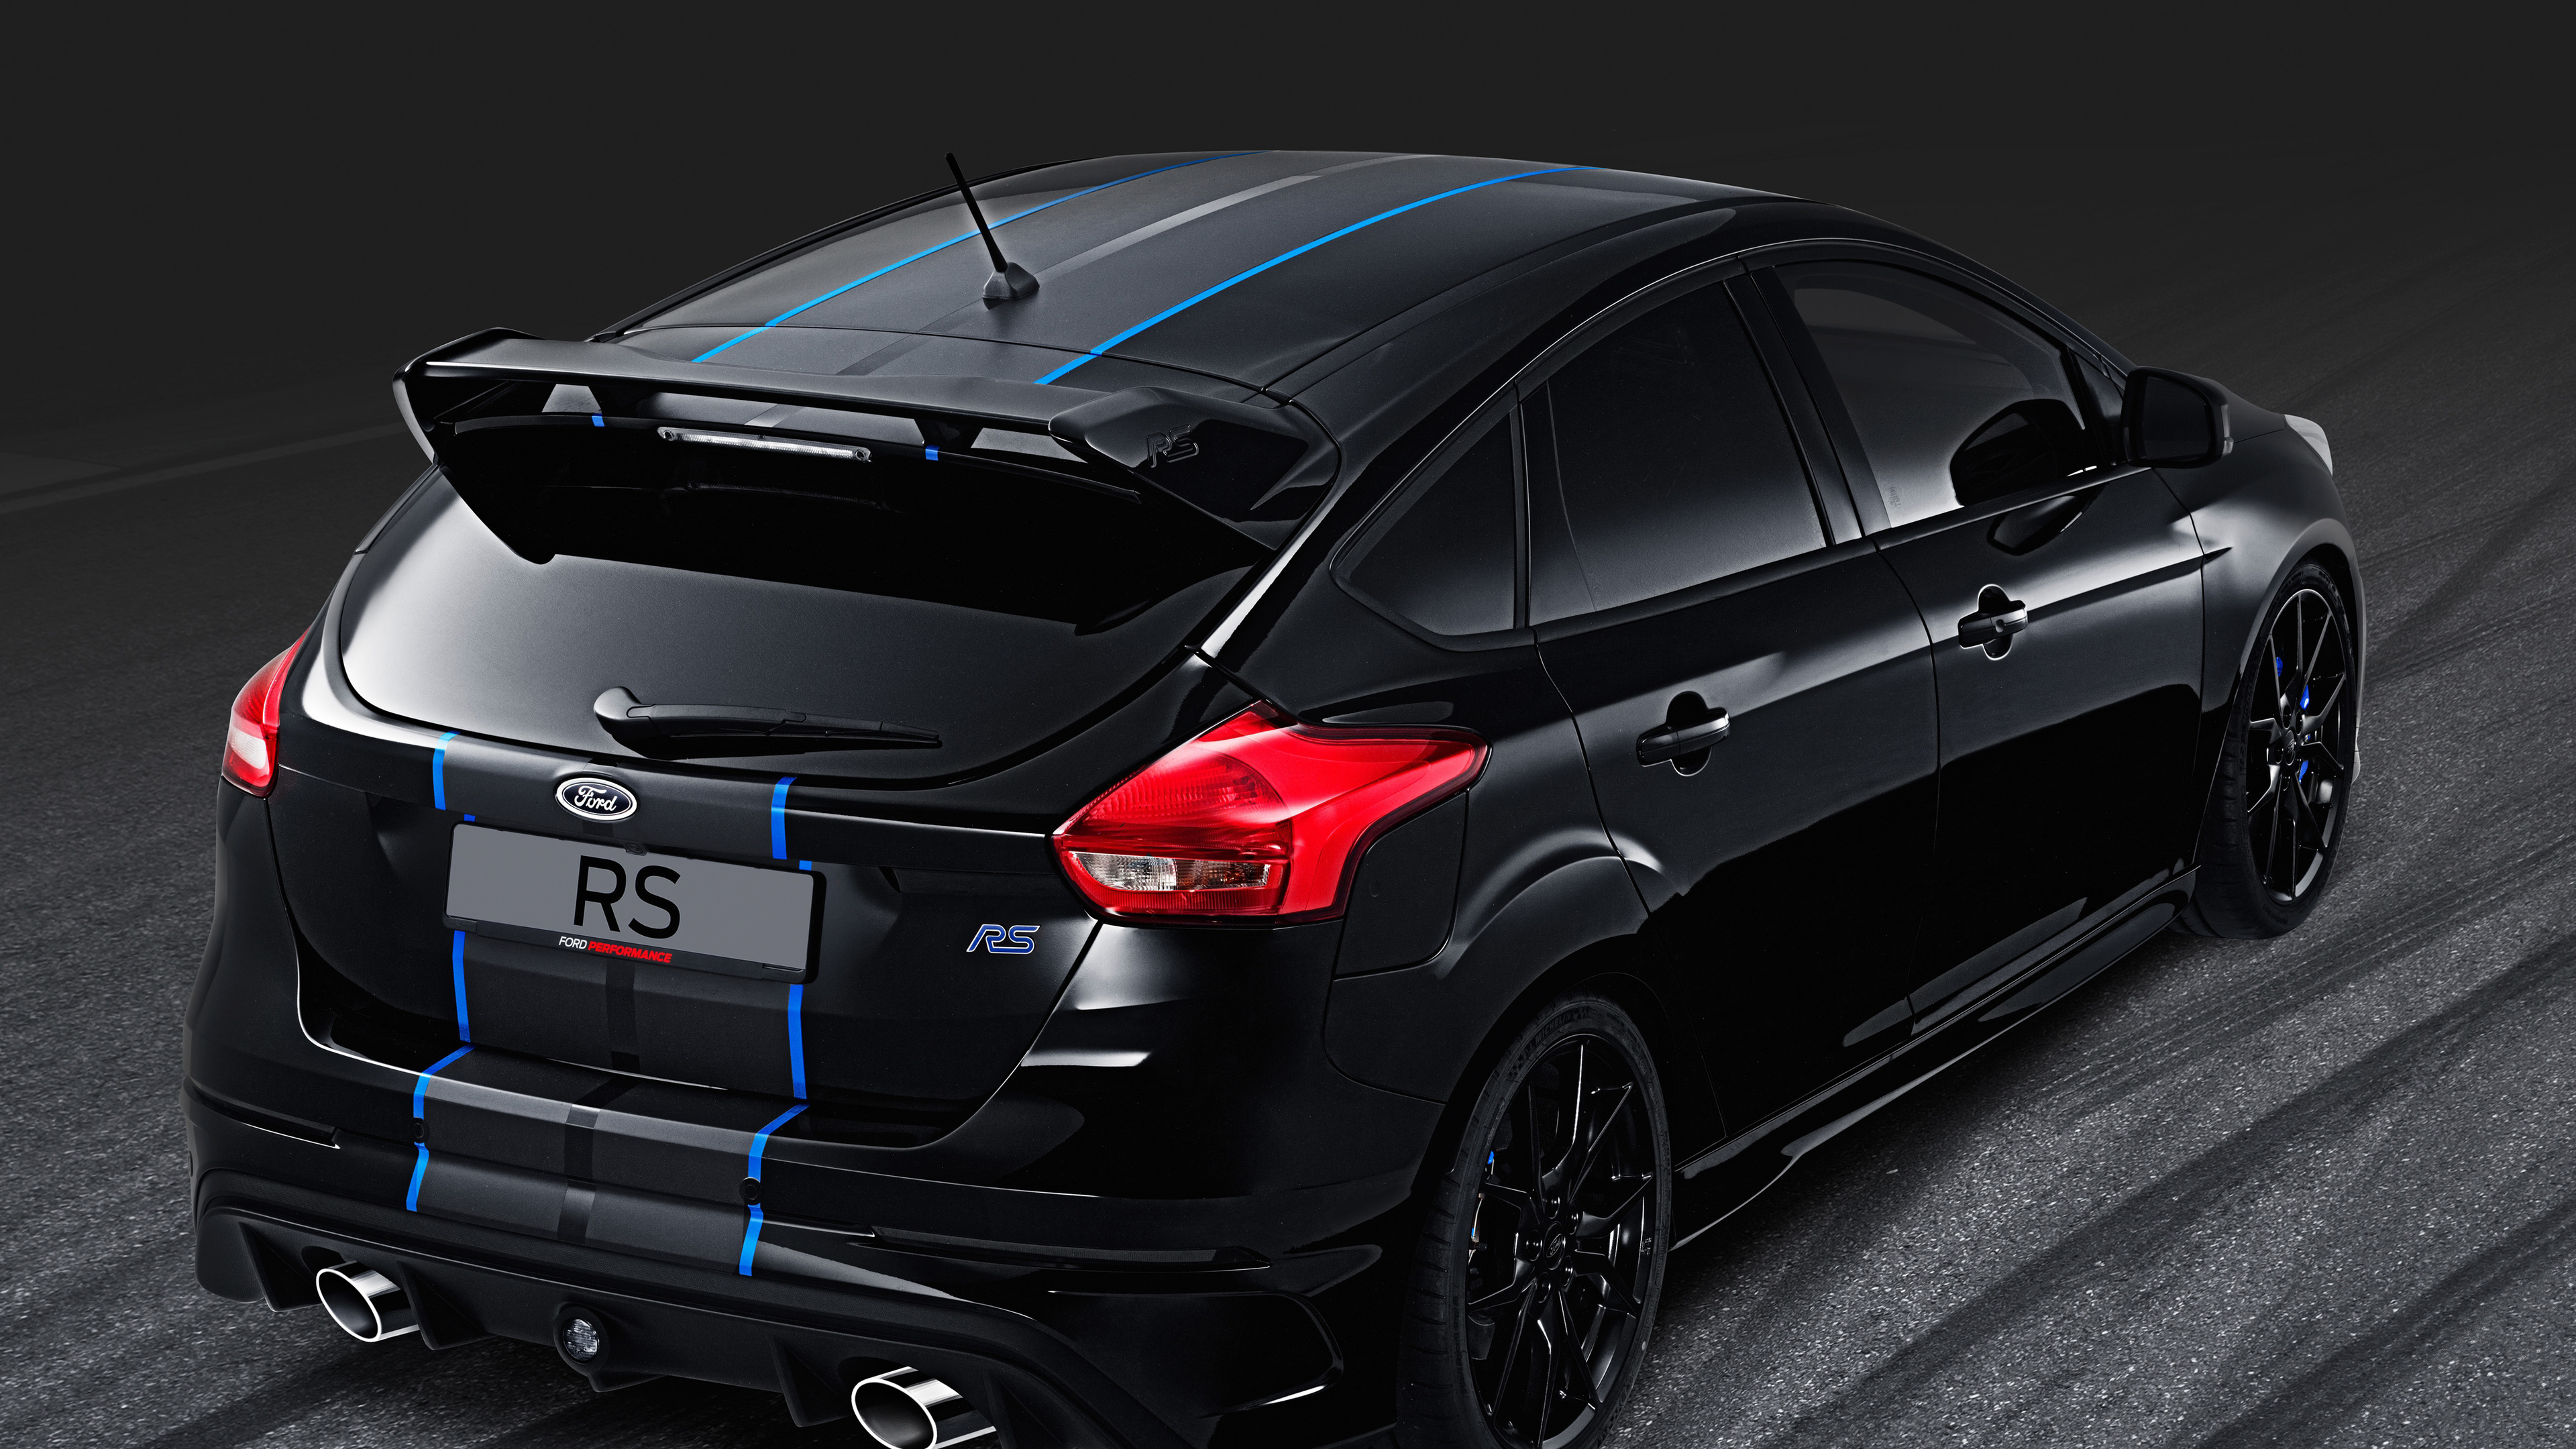 ford focus rs performance parts 2017 1539108529 - Ford Focus RS Performance Parts 2017 - hd-wallpapers, ford wallpapers, ford focus wallpapers, cars wallpapers, 4k-wallpapers, 2017 cars wallpapers